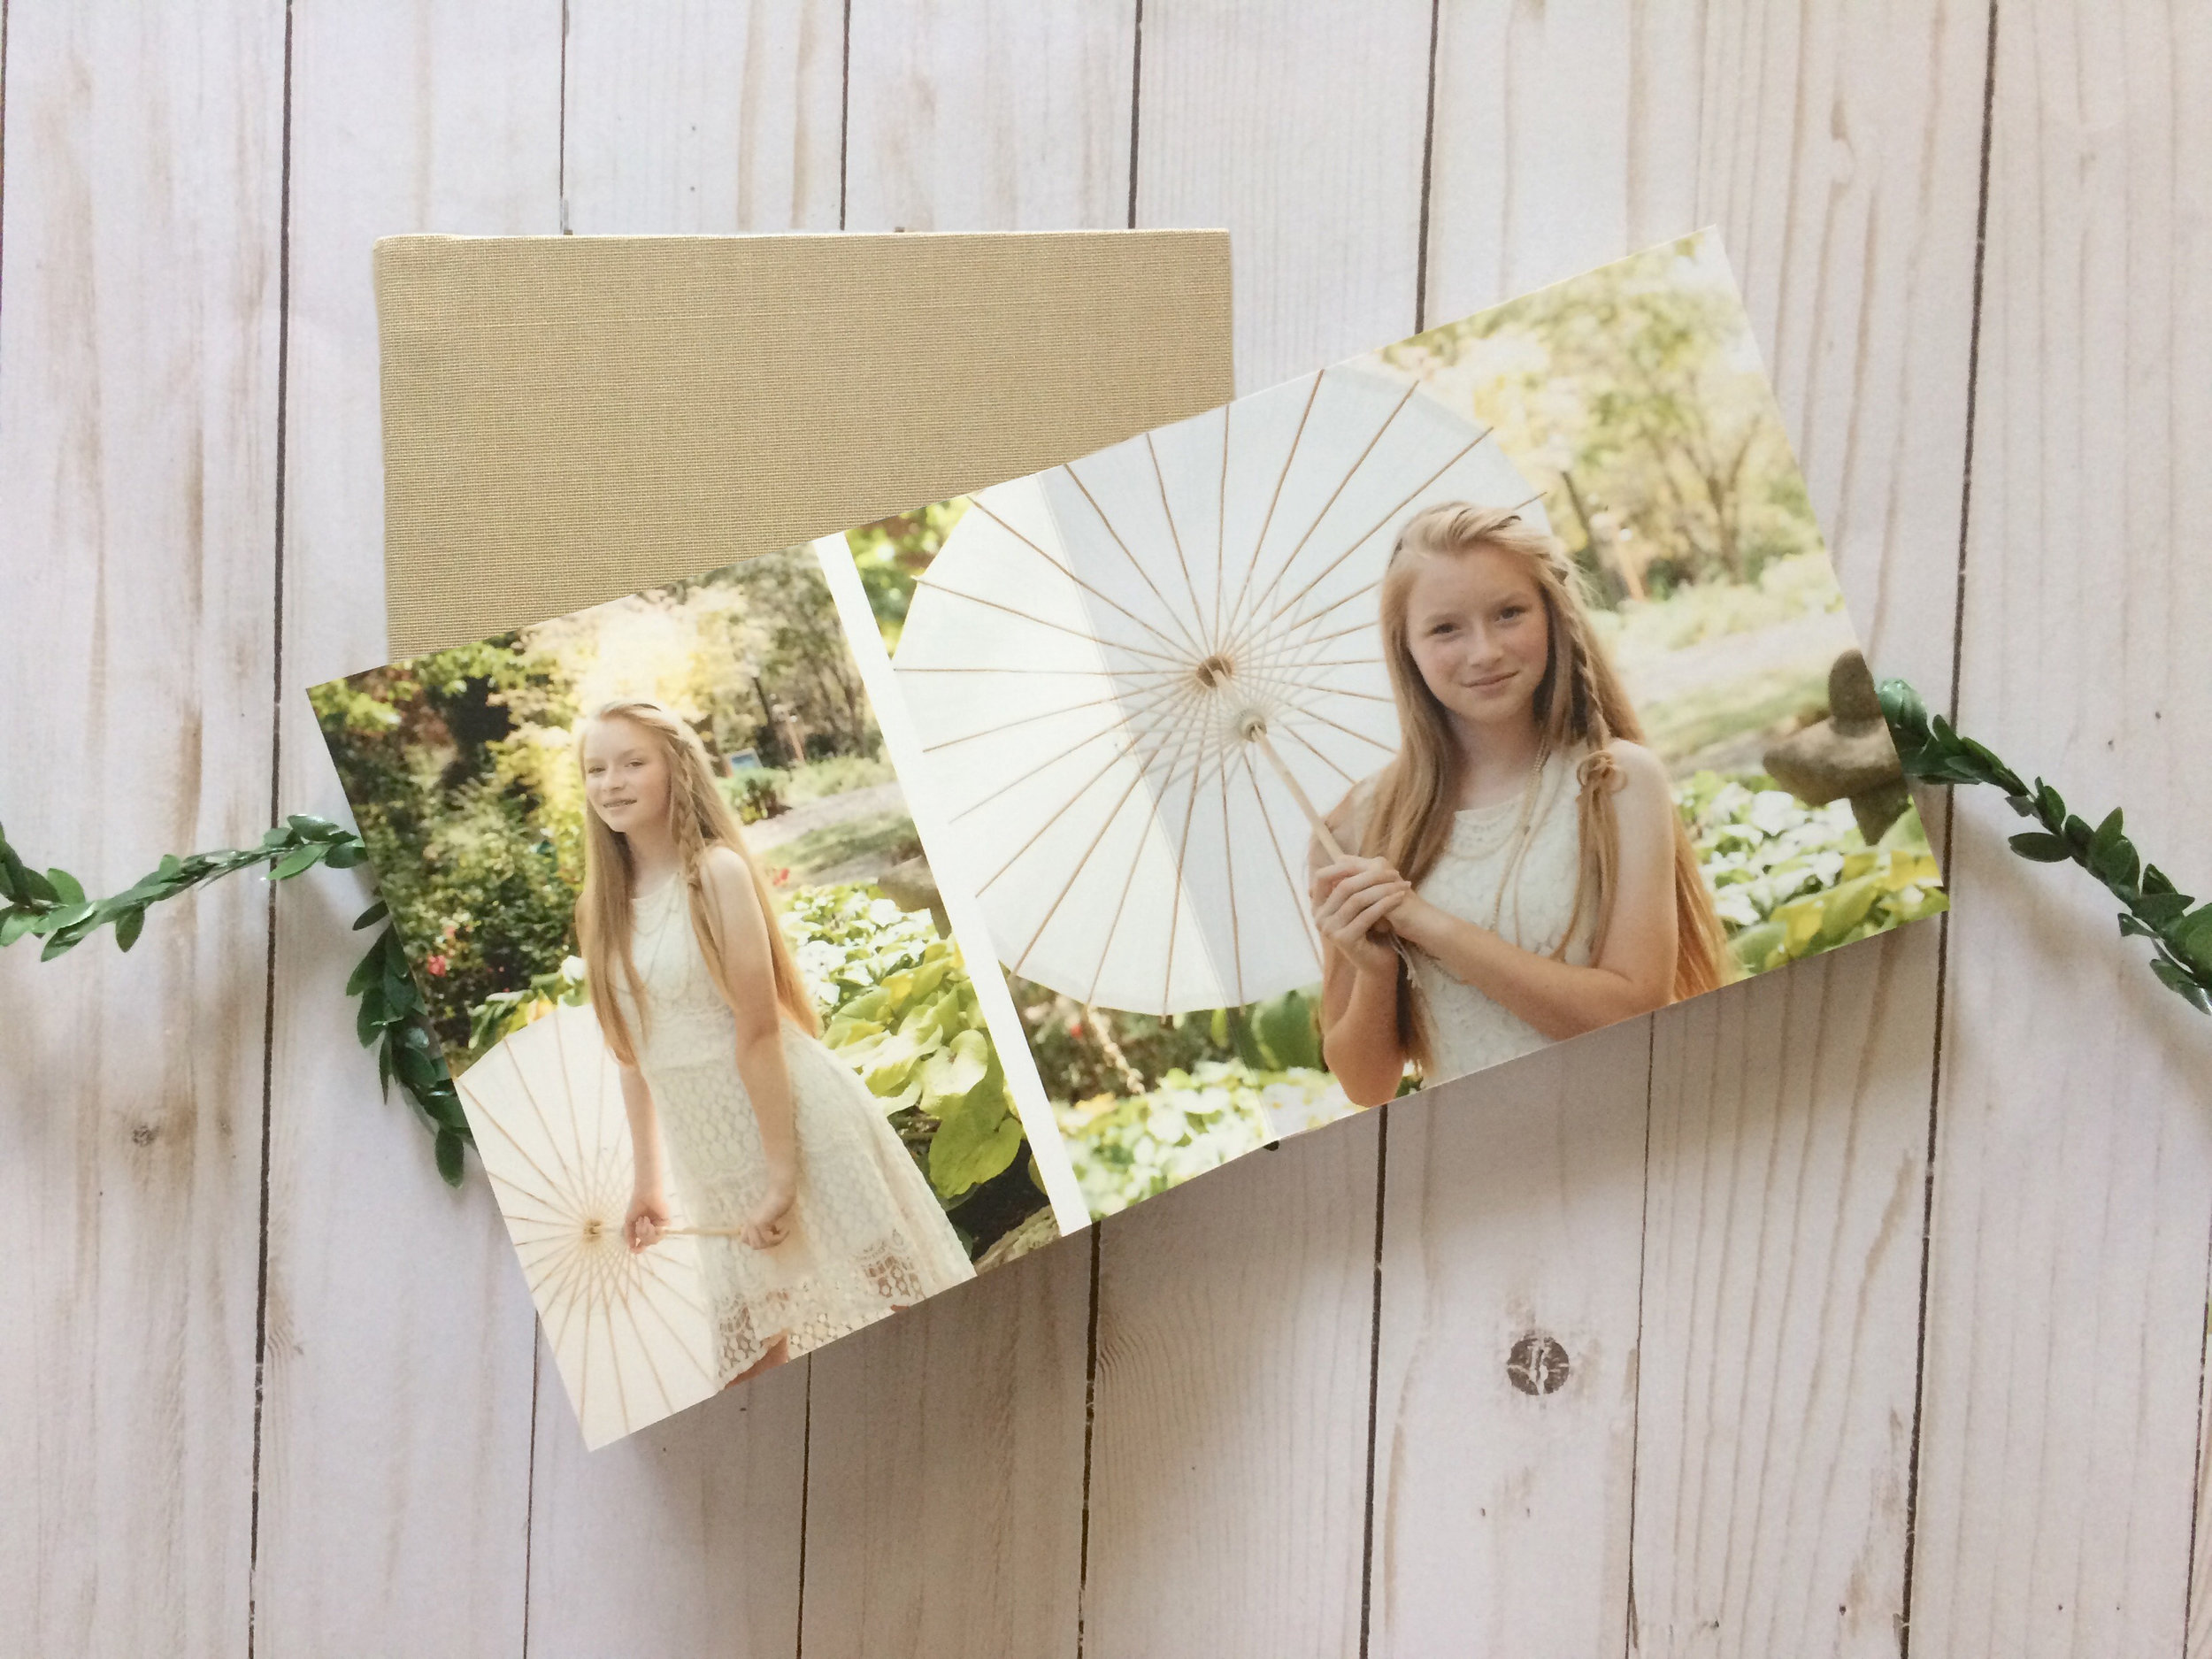 ALBUMS Custom designed albums are perfect gifts for family and special events!